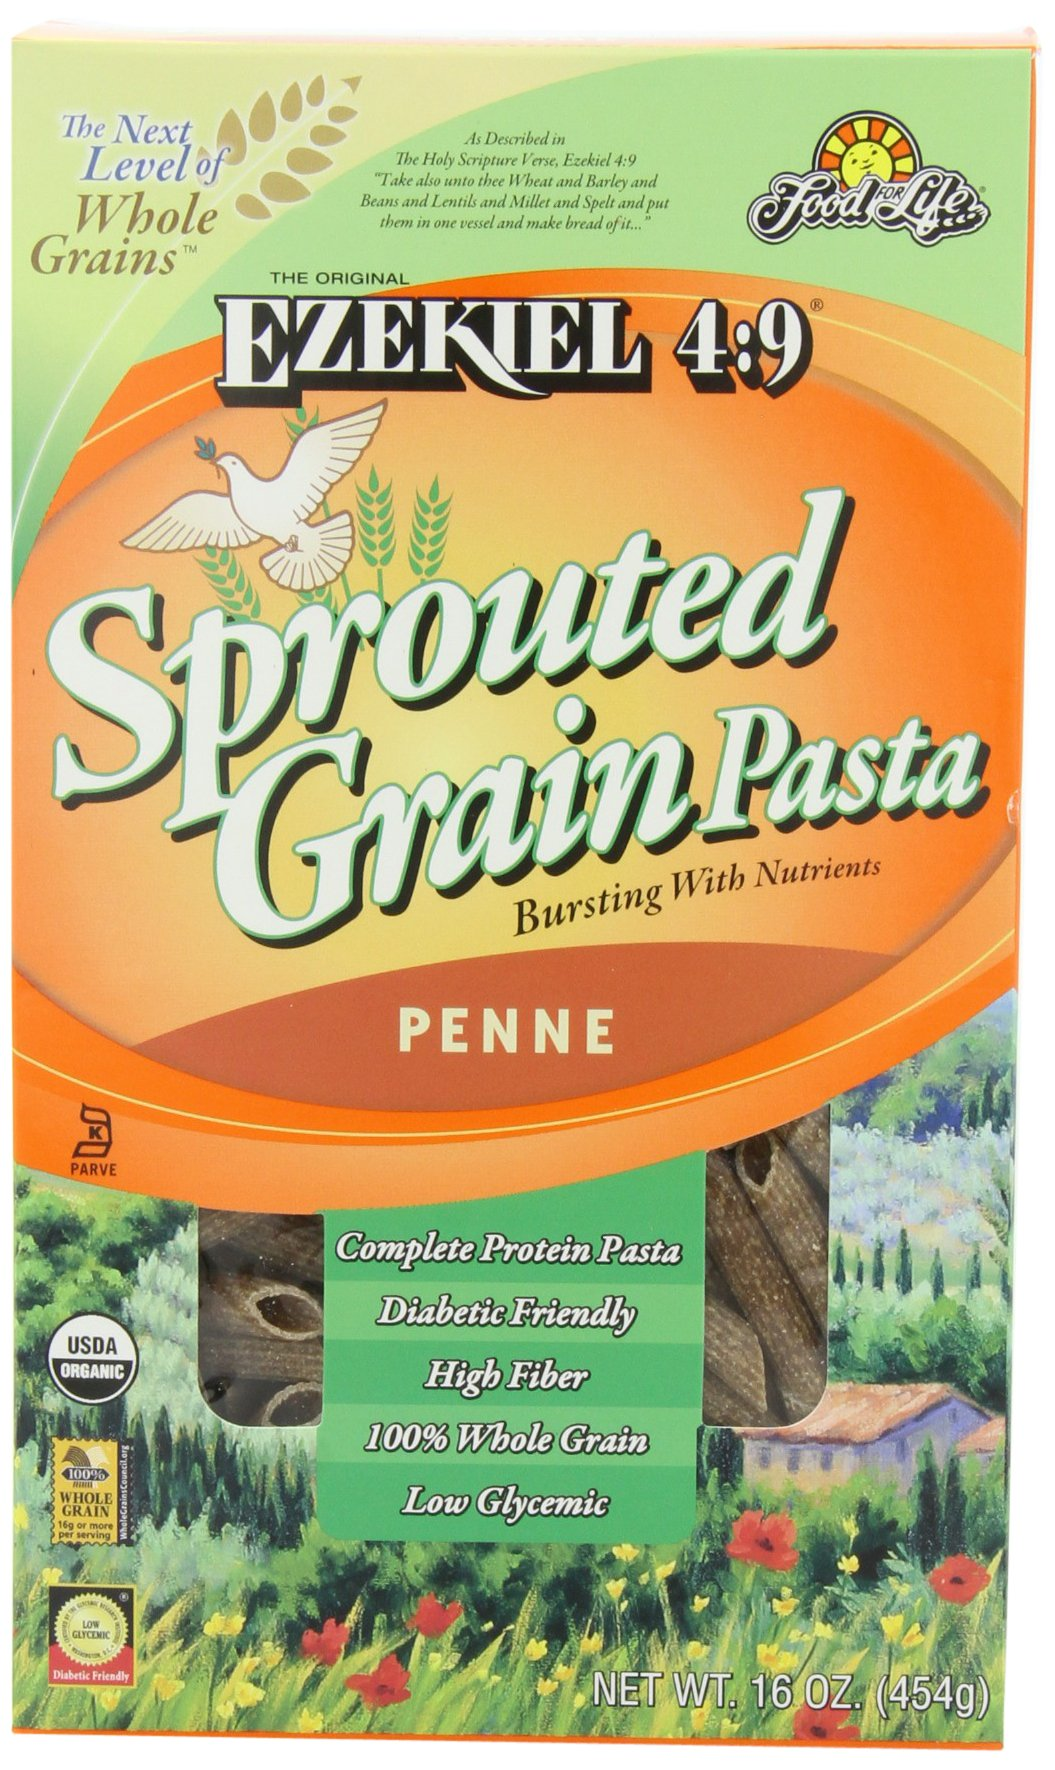 Food For Life Ezekiel 4:9 Organic Sprouted Grain Pasta, Penne, 16-Ounce Boxes (Pack of 6) by Food for Life